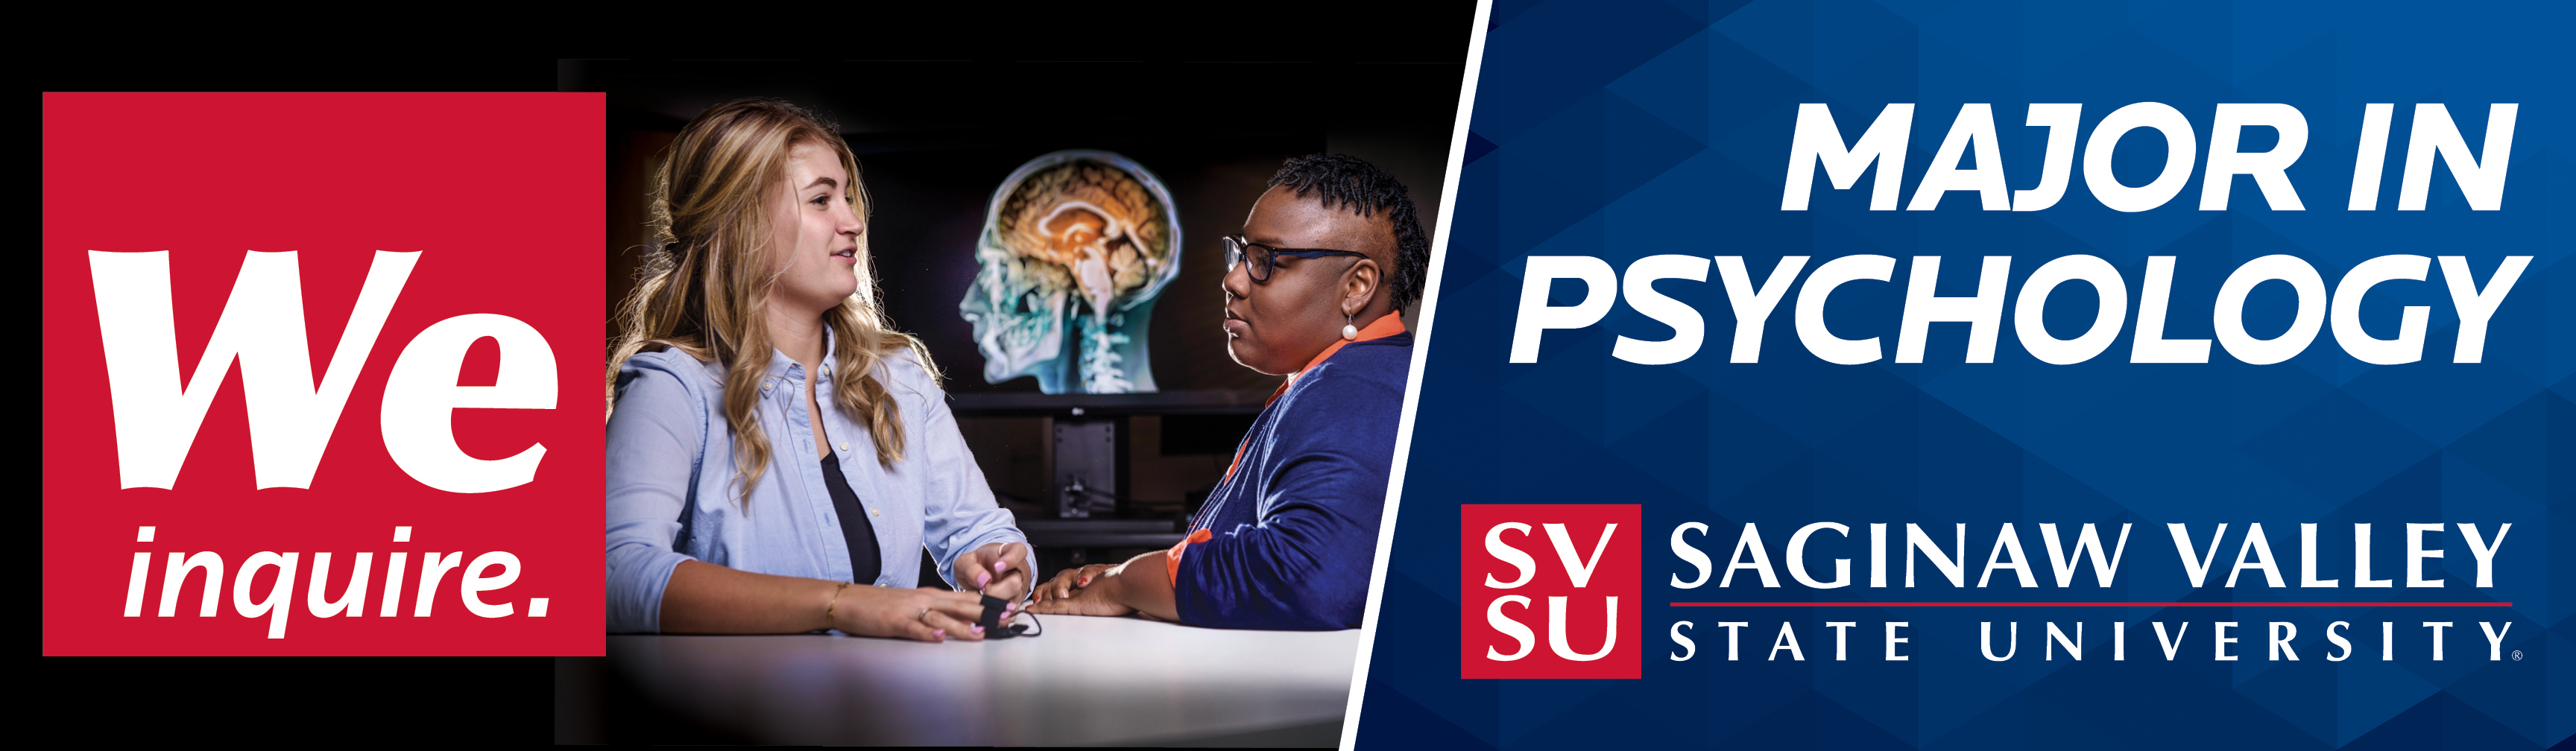 Banner graphic featuring red square block with We Inquire in white letters to left and featuring image of faculty member and student with image of brain in the background.